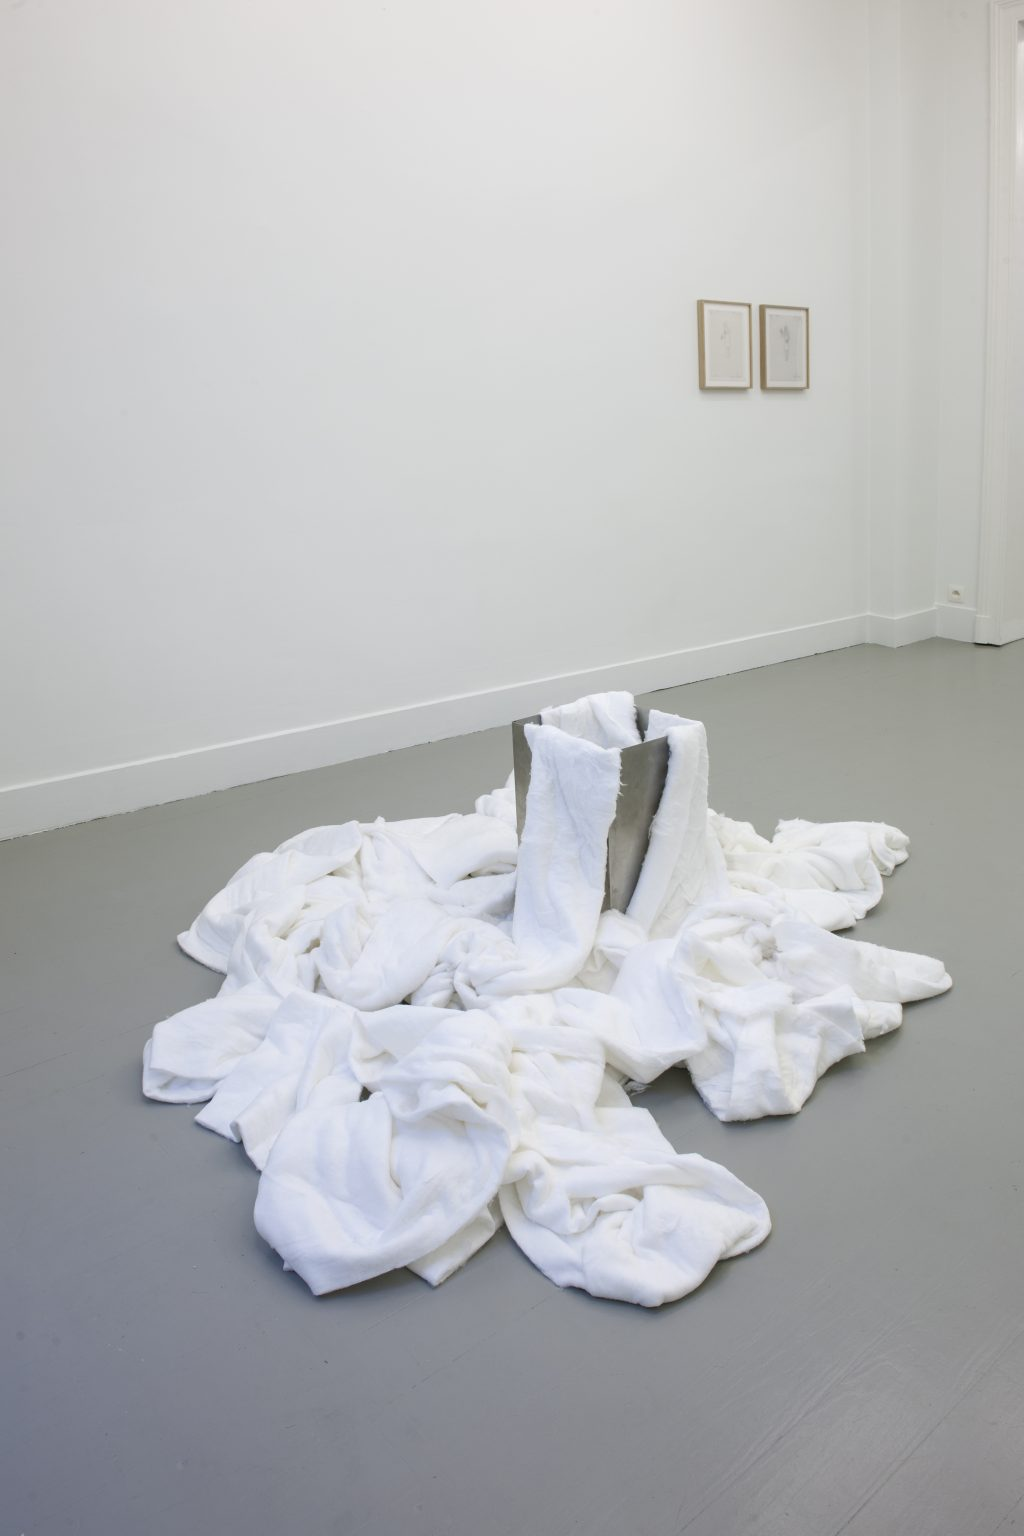 Installation view Jan Mot, 2020